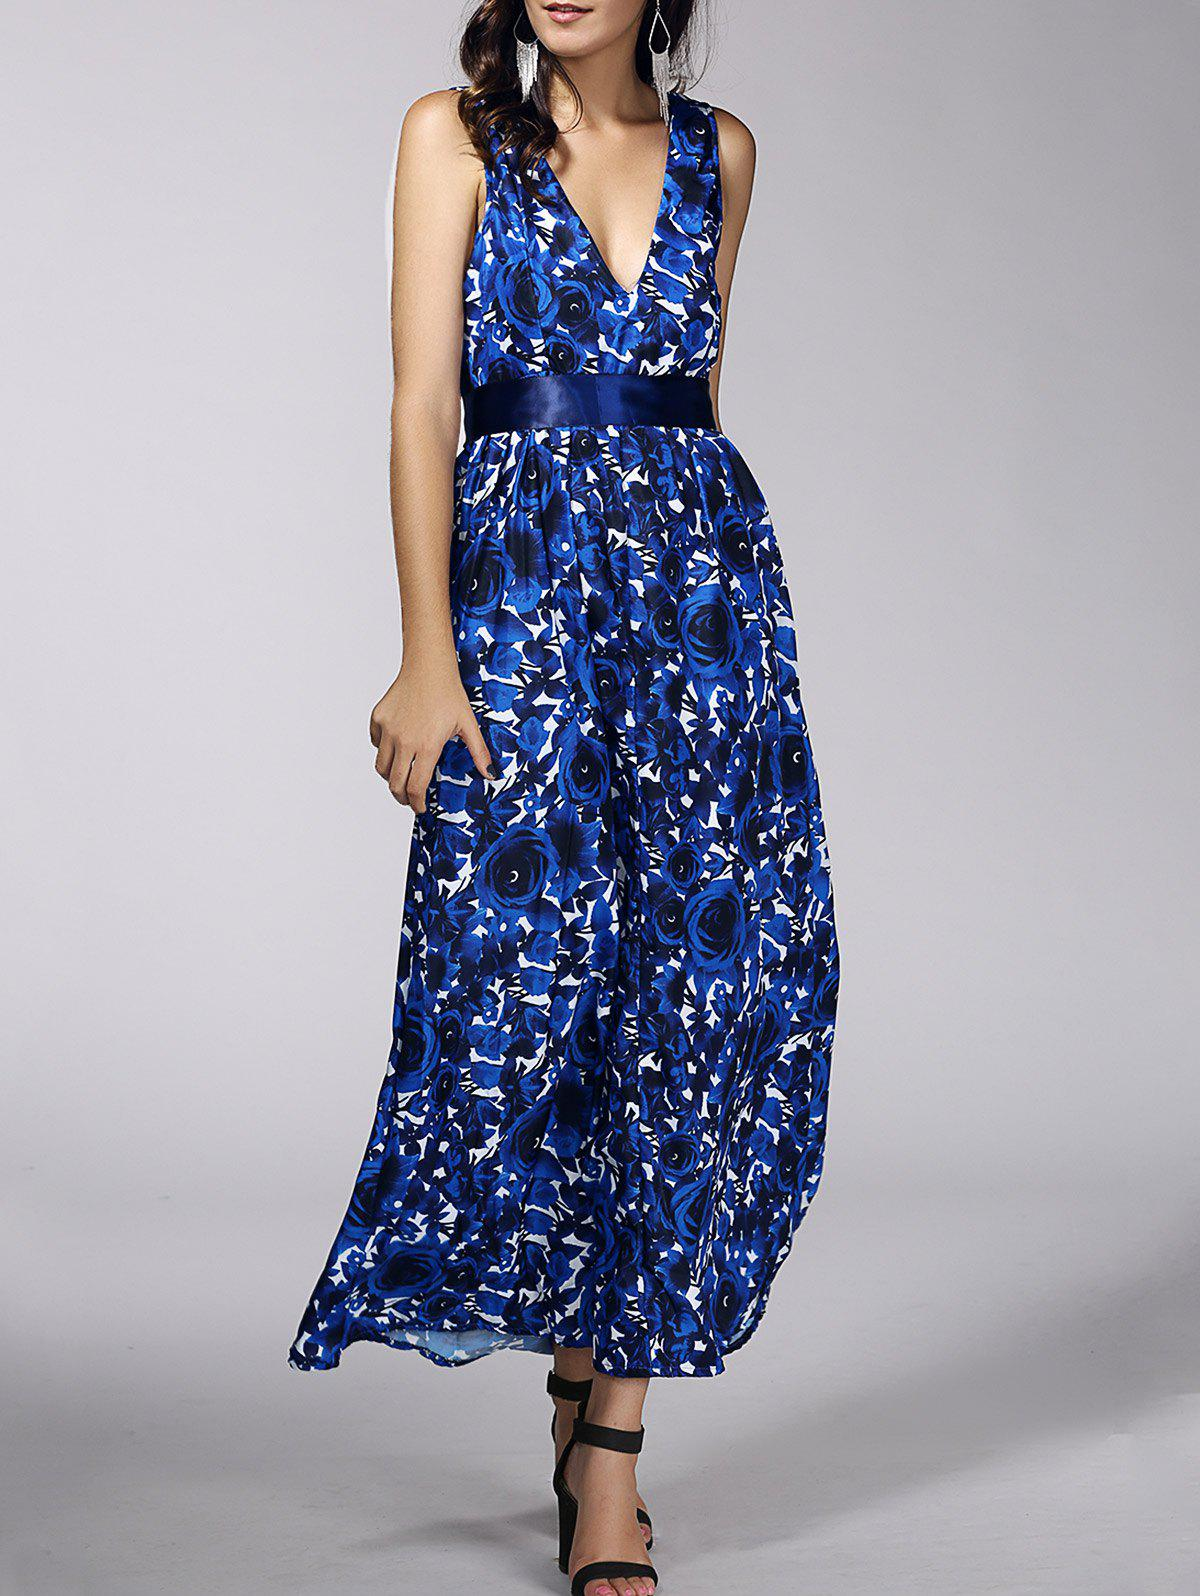 Fashionable Women's Plunging Neck Floral Print Belted Dress - BLUE XL